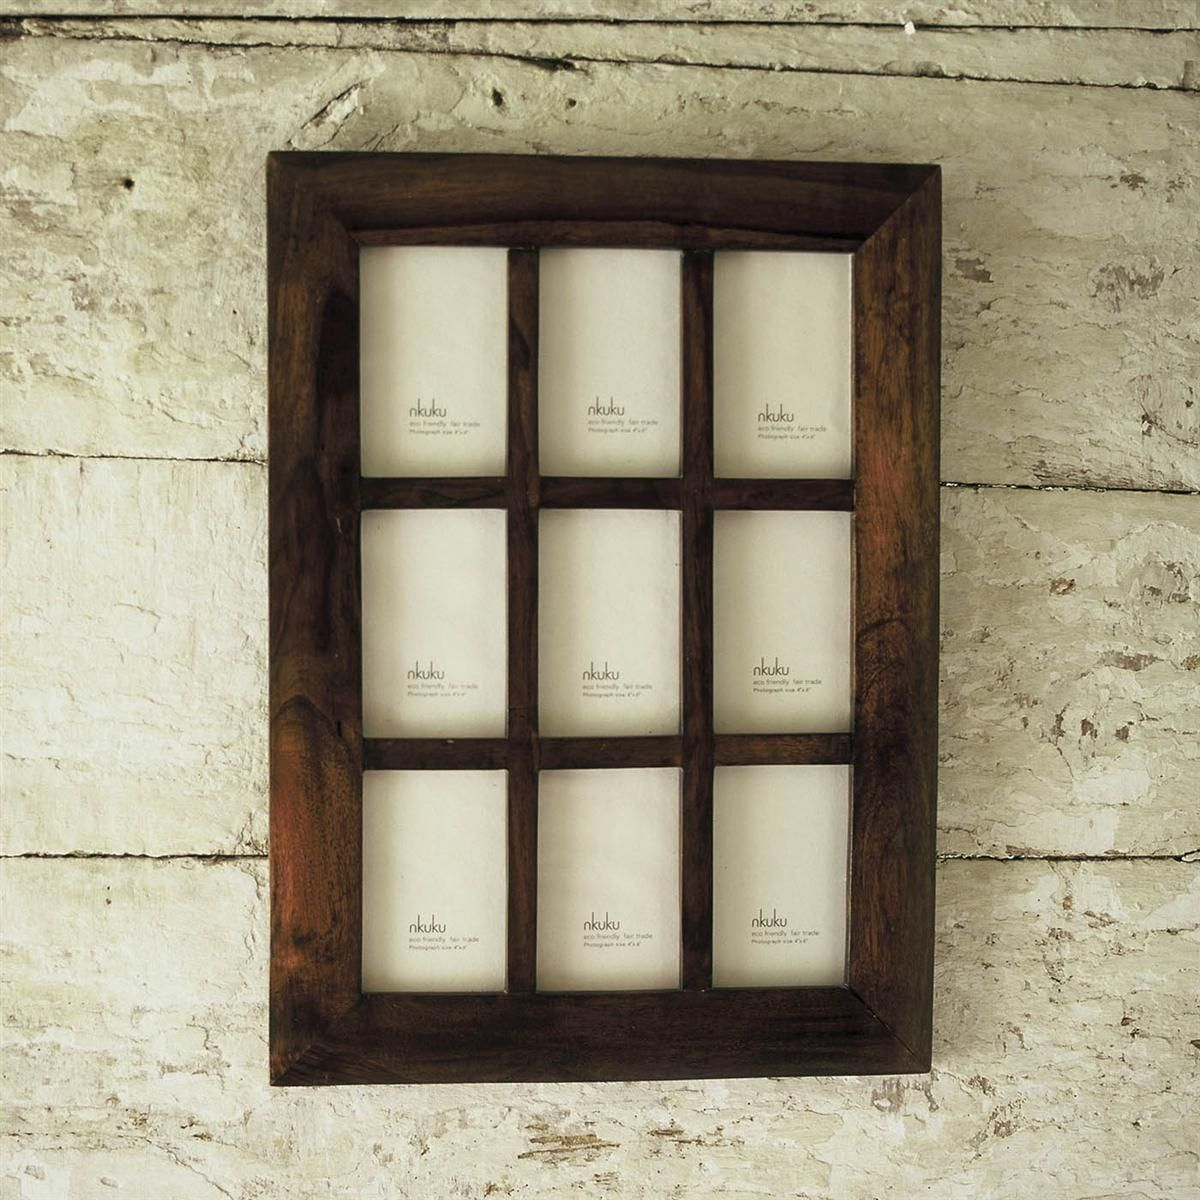 Sheesham Wood Multi Frame | Home | Pinterest | Woods and House